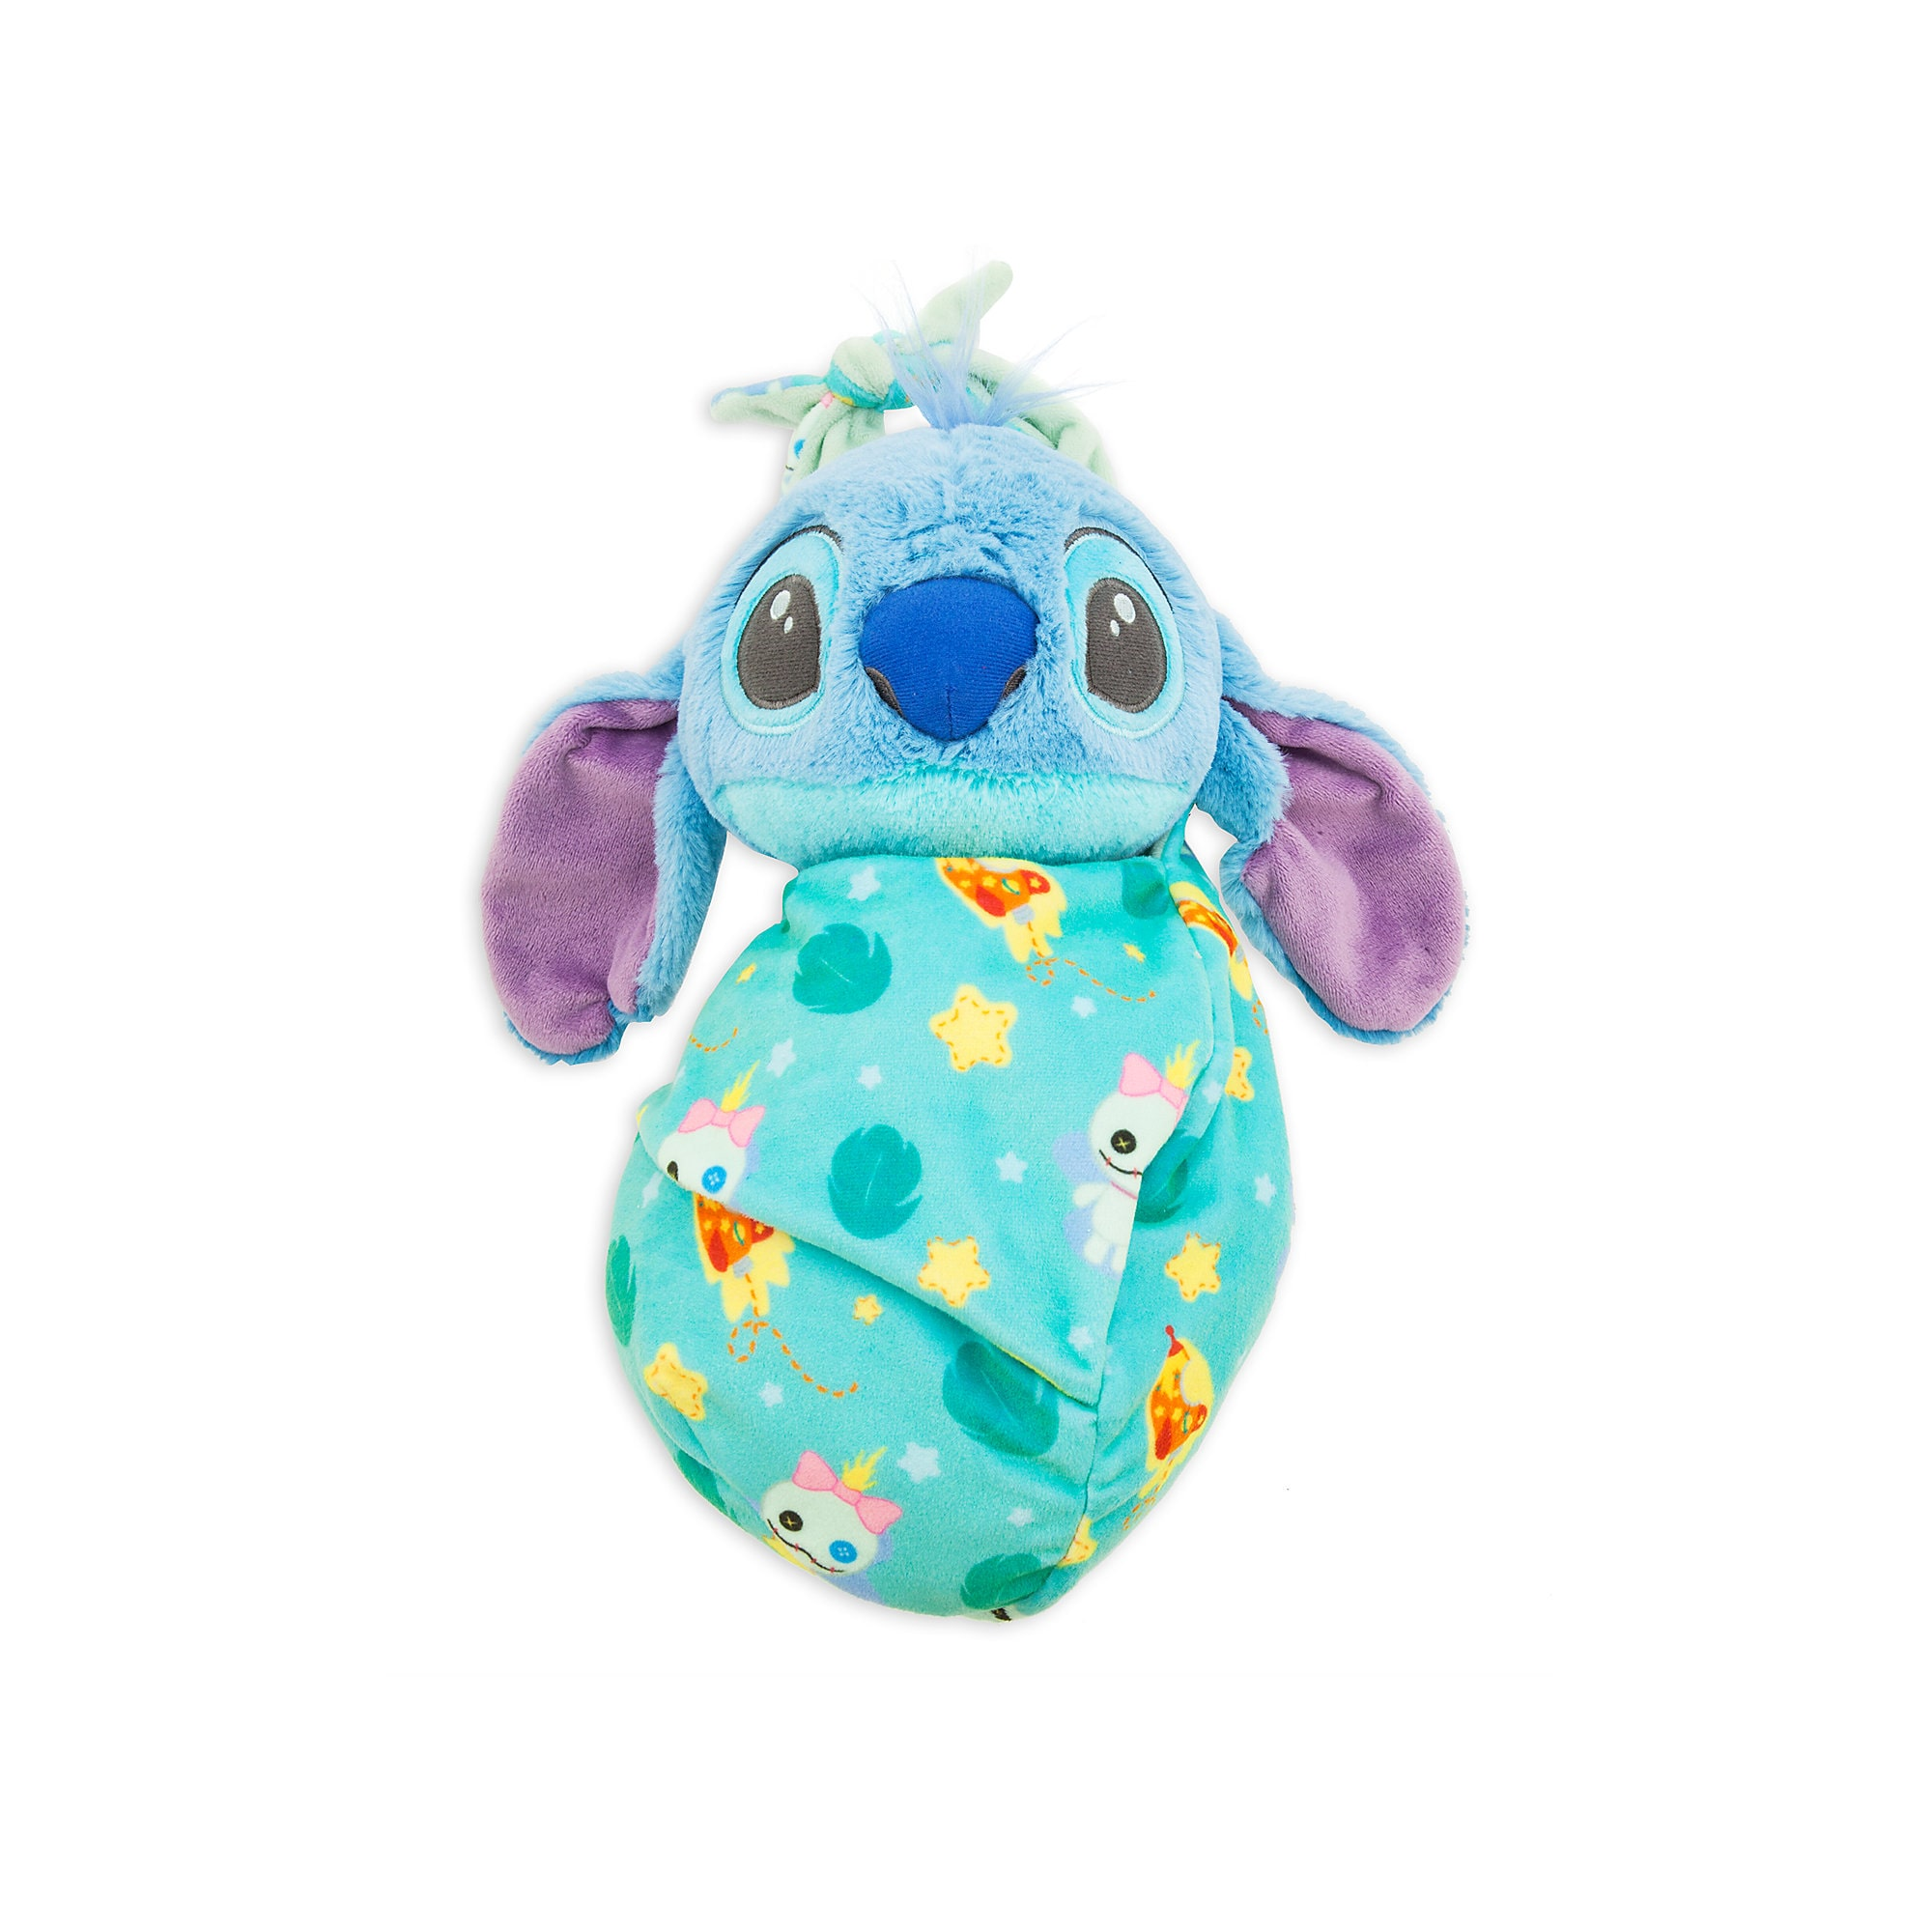 8d0634498308 Stitch Plush in Pouch - Disney Babies - Small